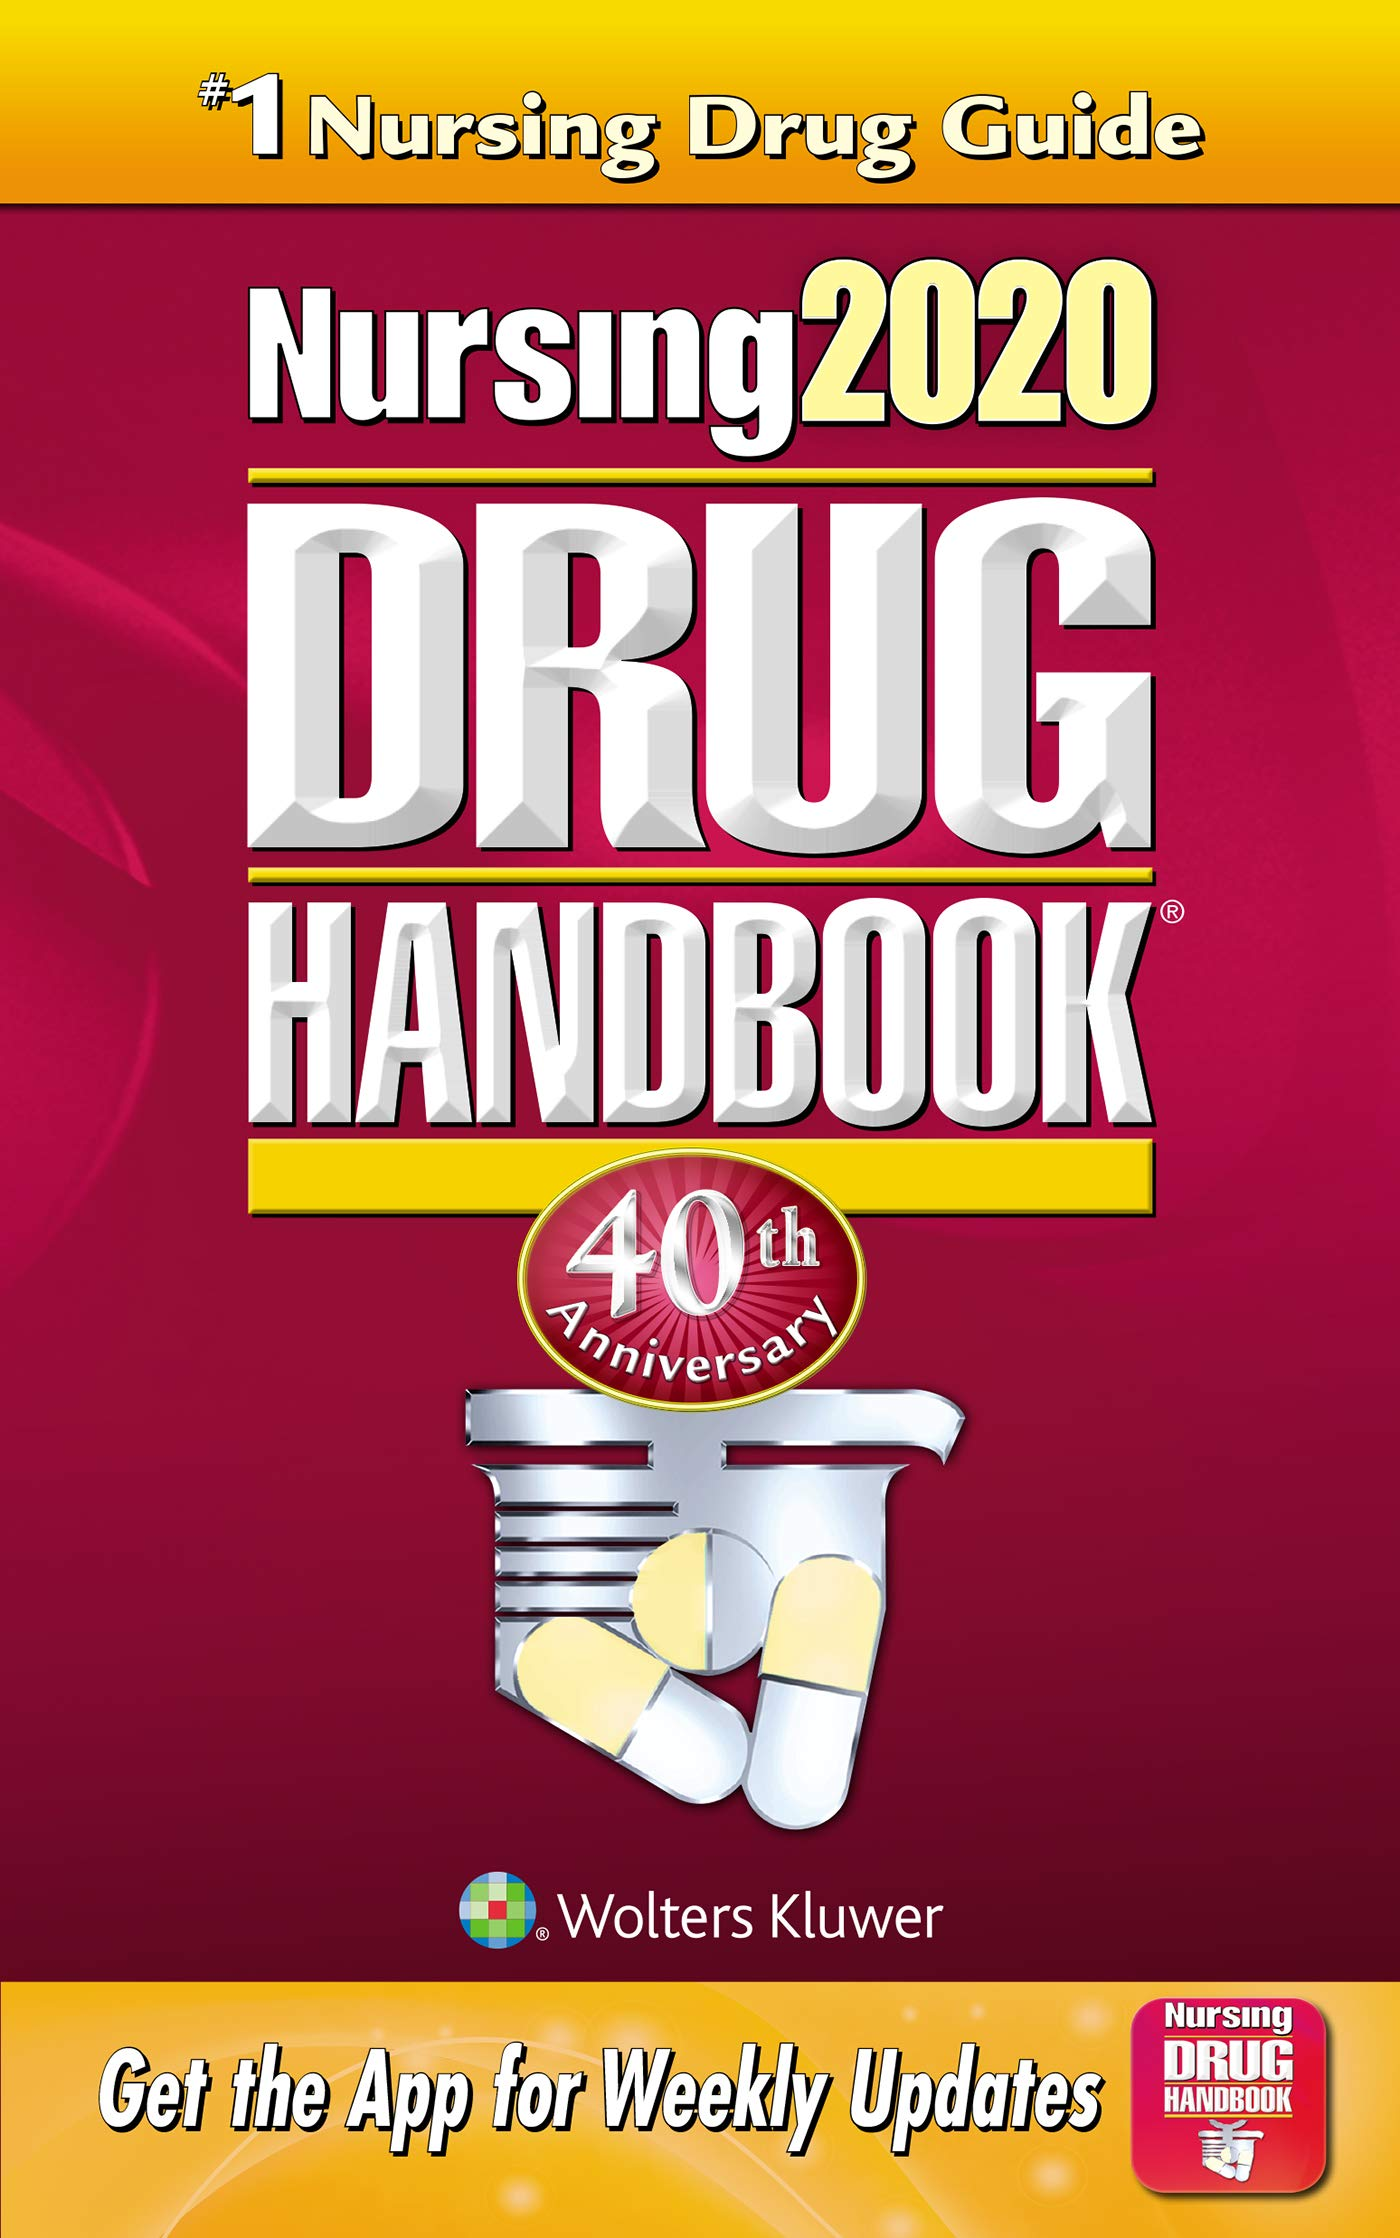 Nursing2020 Drug Handbook by LWW